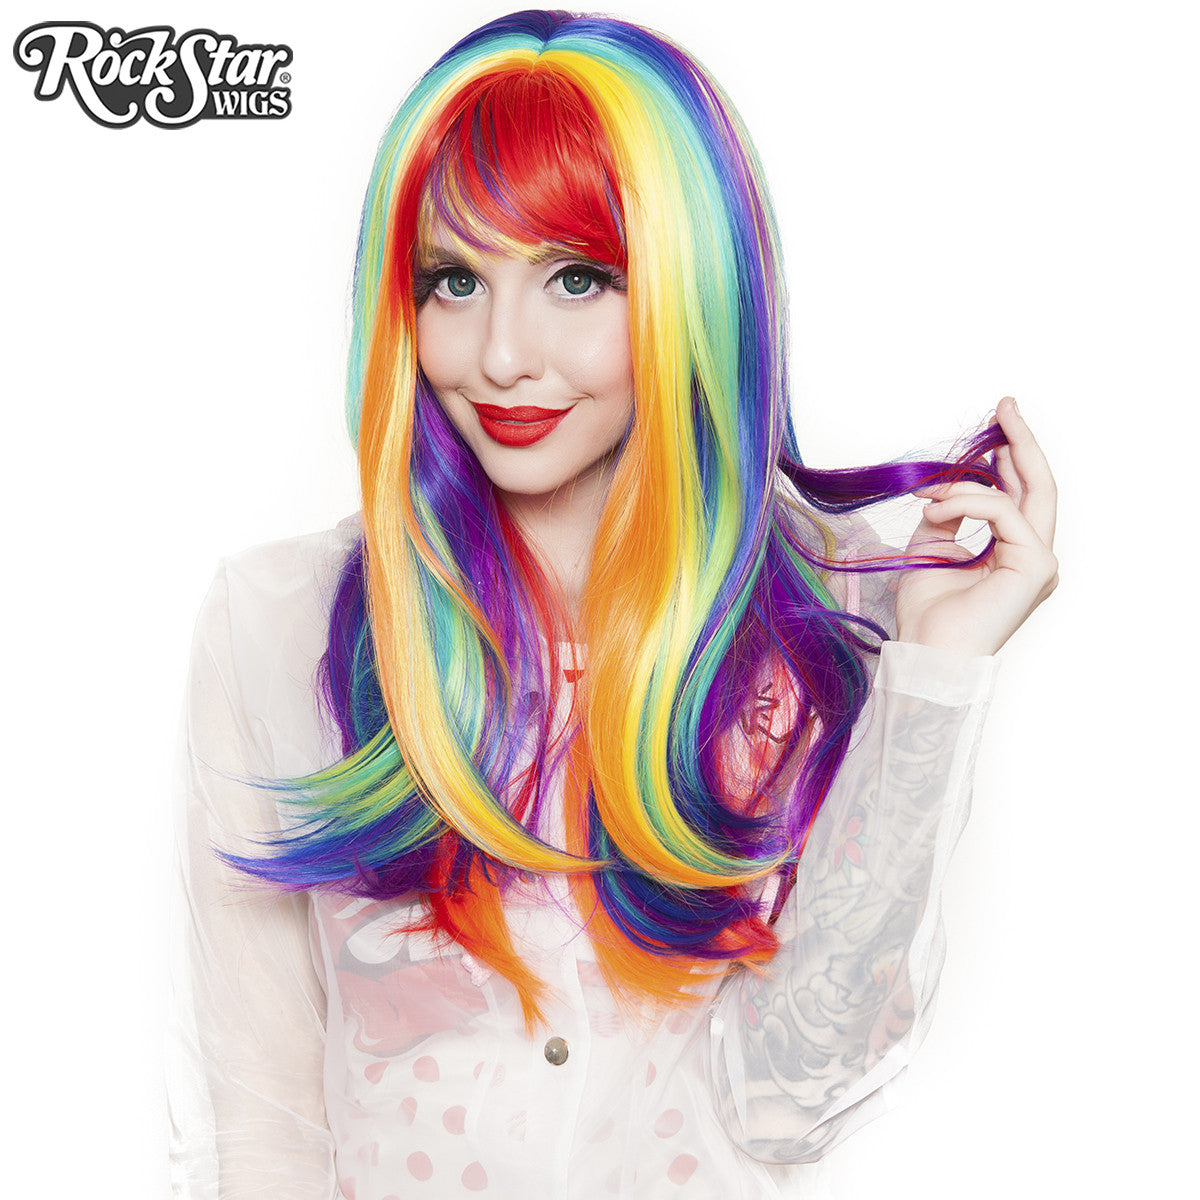 RockStar Wigs® <br> Rainbow Rock™ Collection - Hair Prism 3 -00895